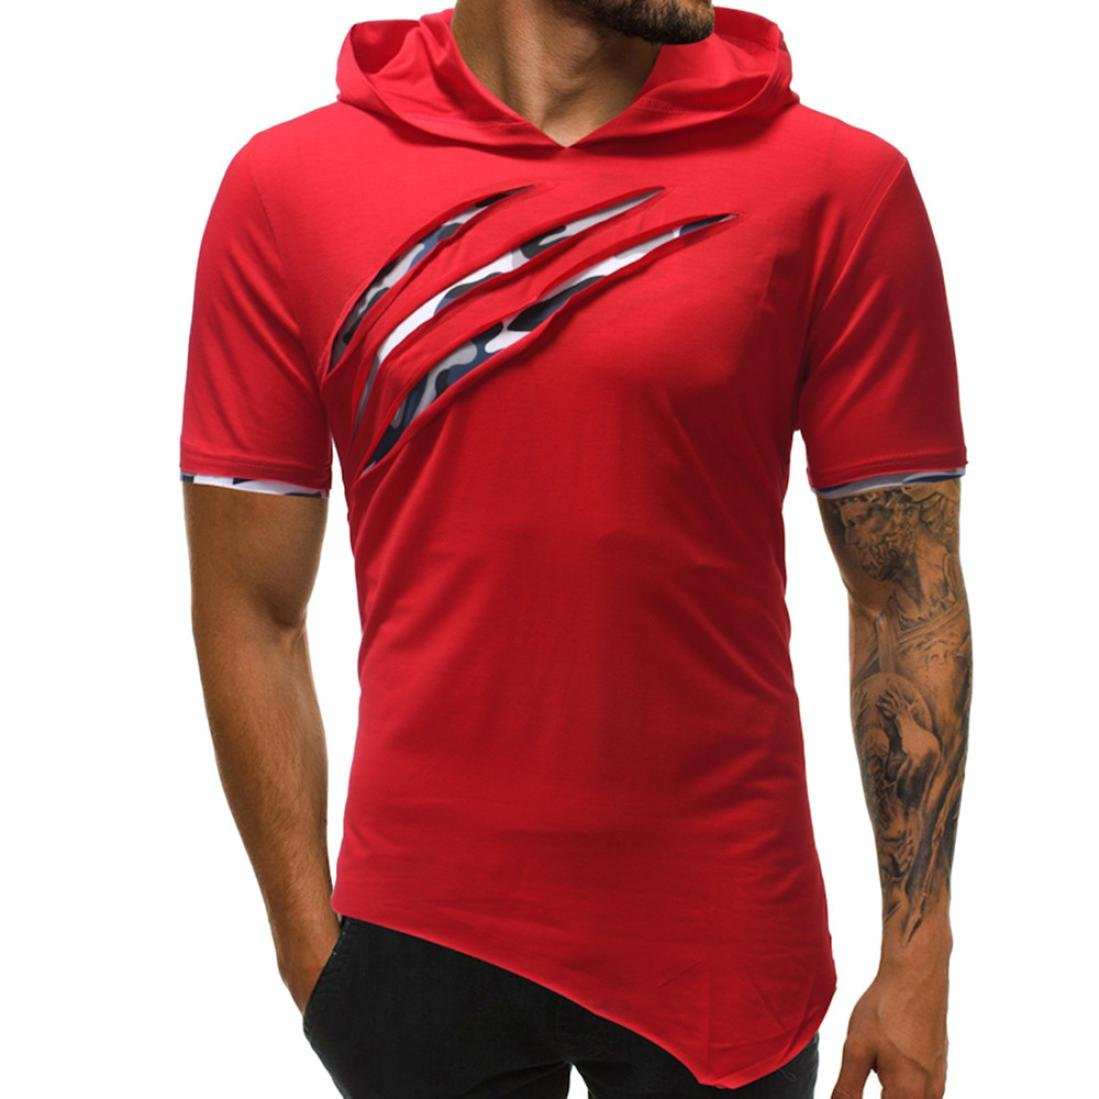 72e78f811ea Amazon.com  vermers Men s Hoodie T Shirts Fashion Personality Pure Color  Sport Short Sleeve Tee Tops  Clothing